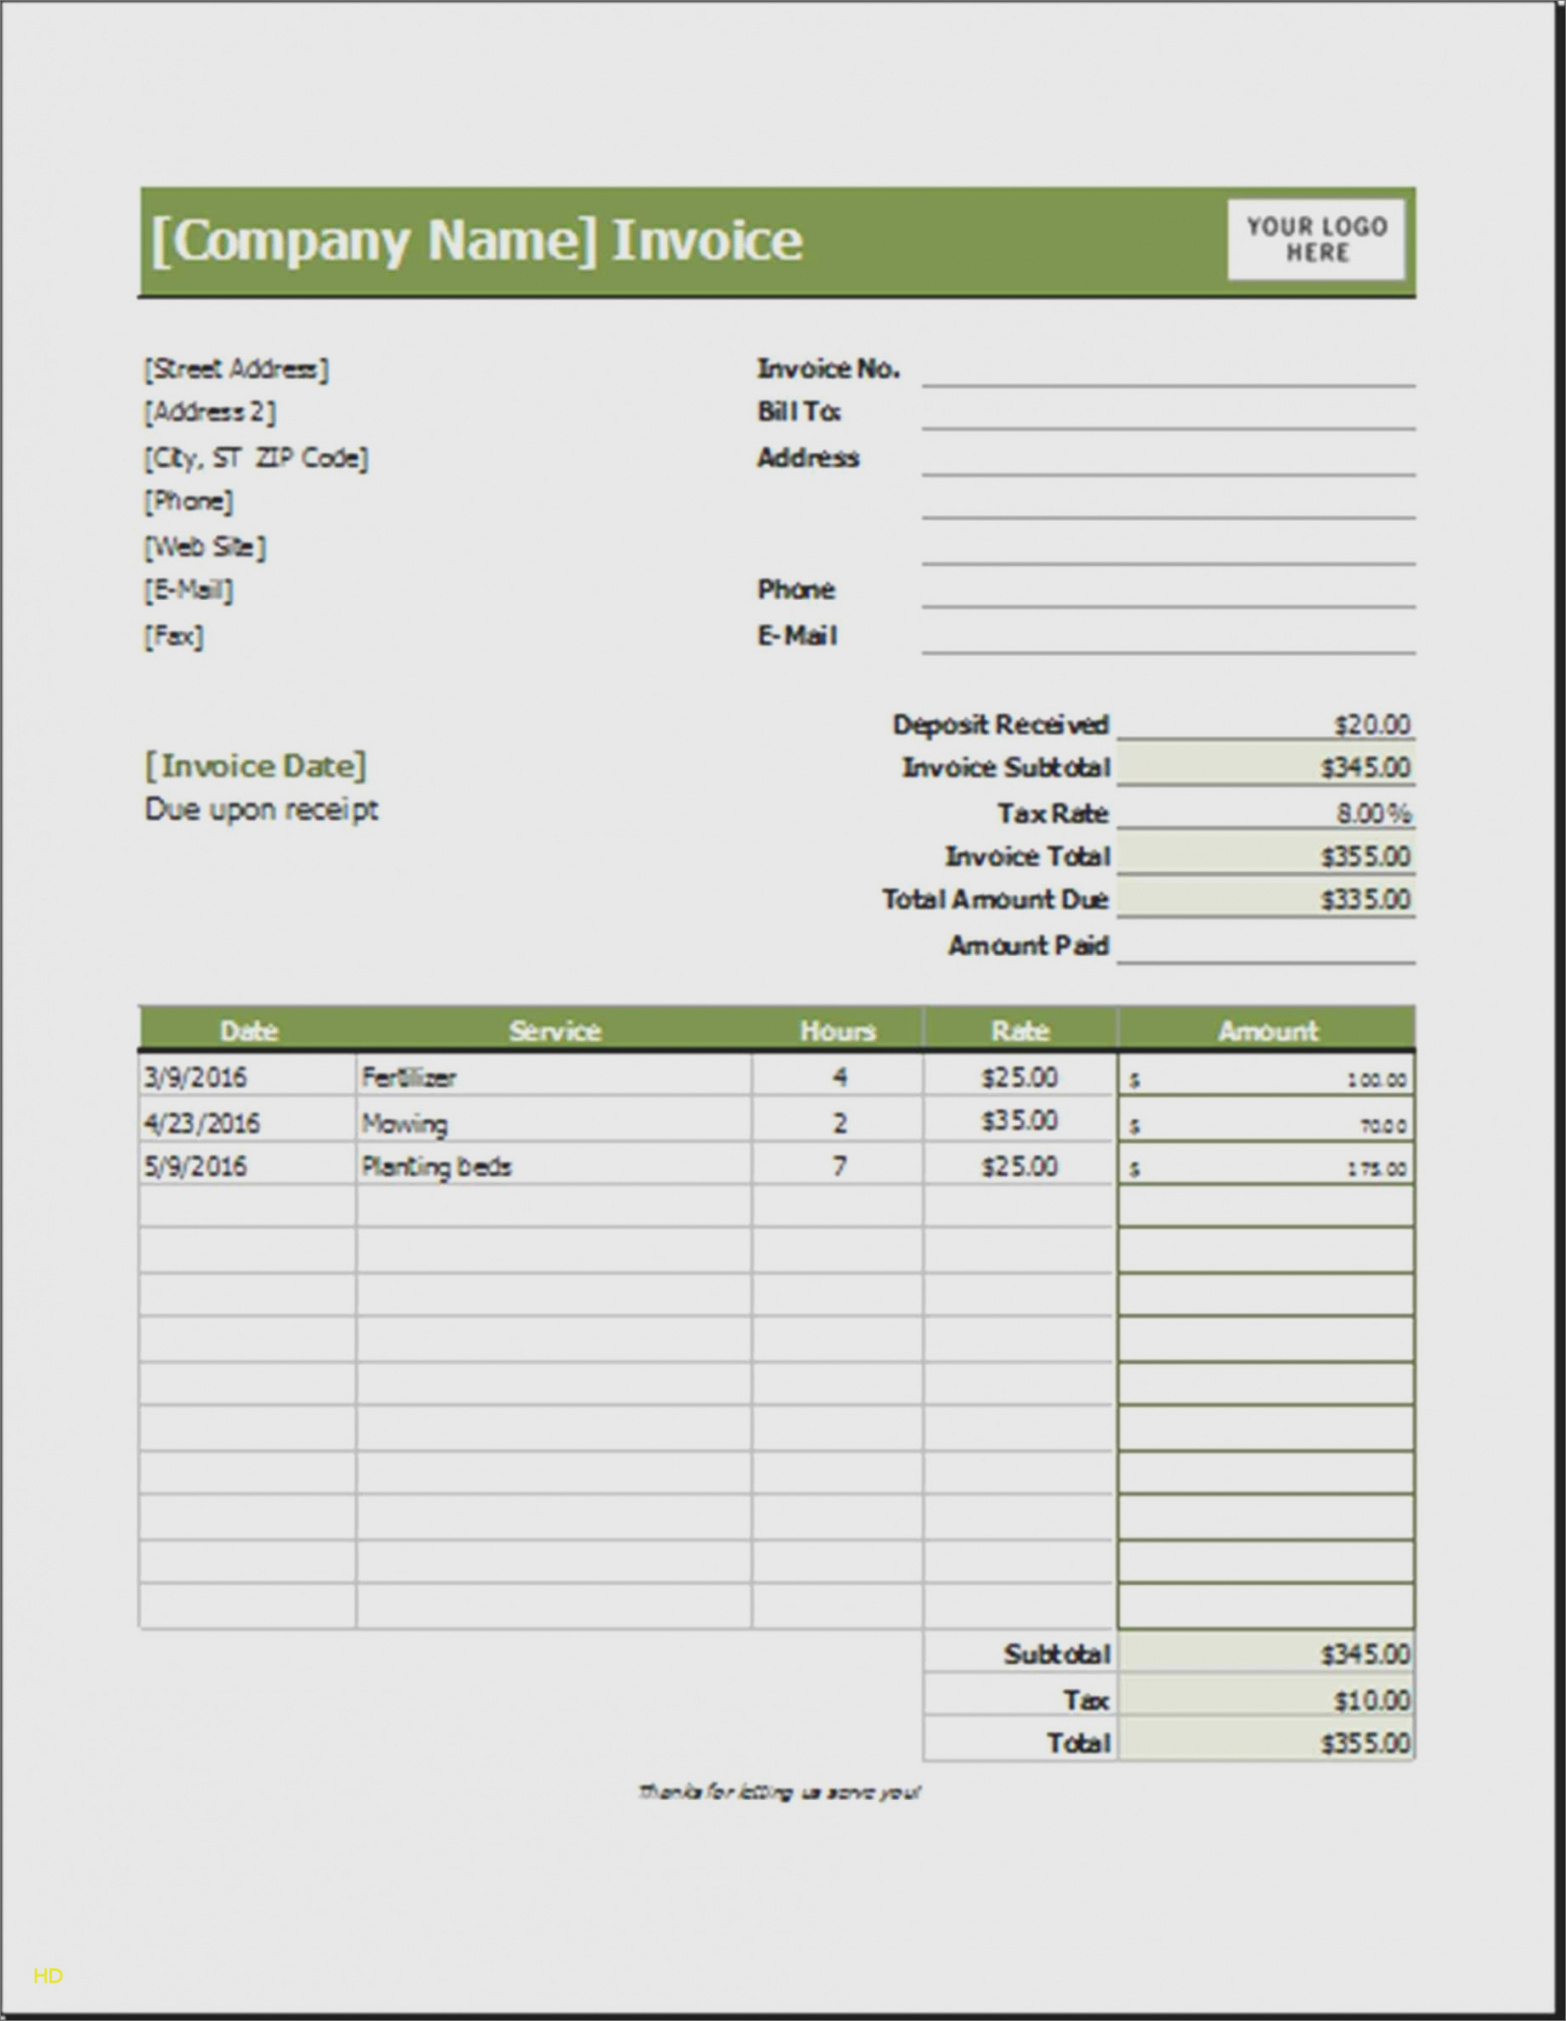 15 Elegant Landscaping Invoice Template Excel | Free Invoice Landscape Invoice Template Excel